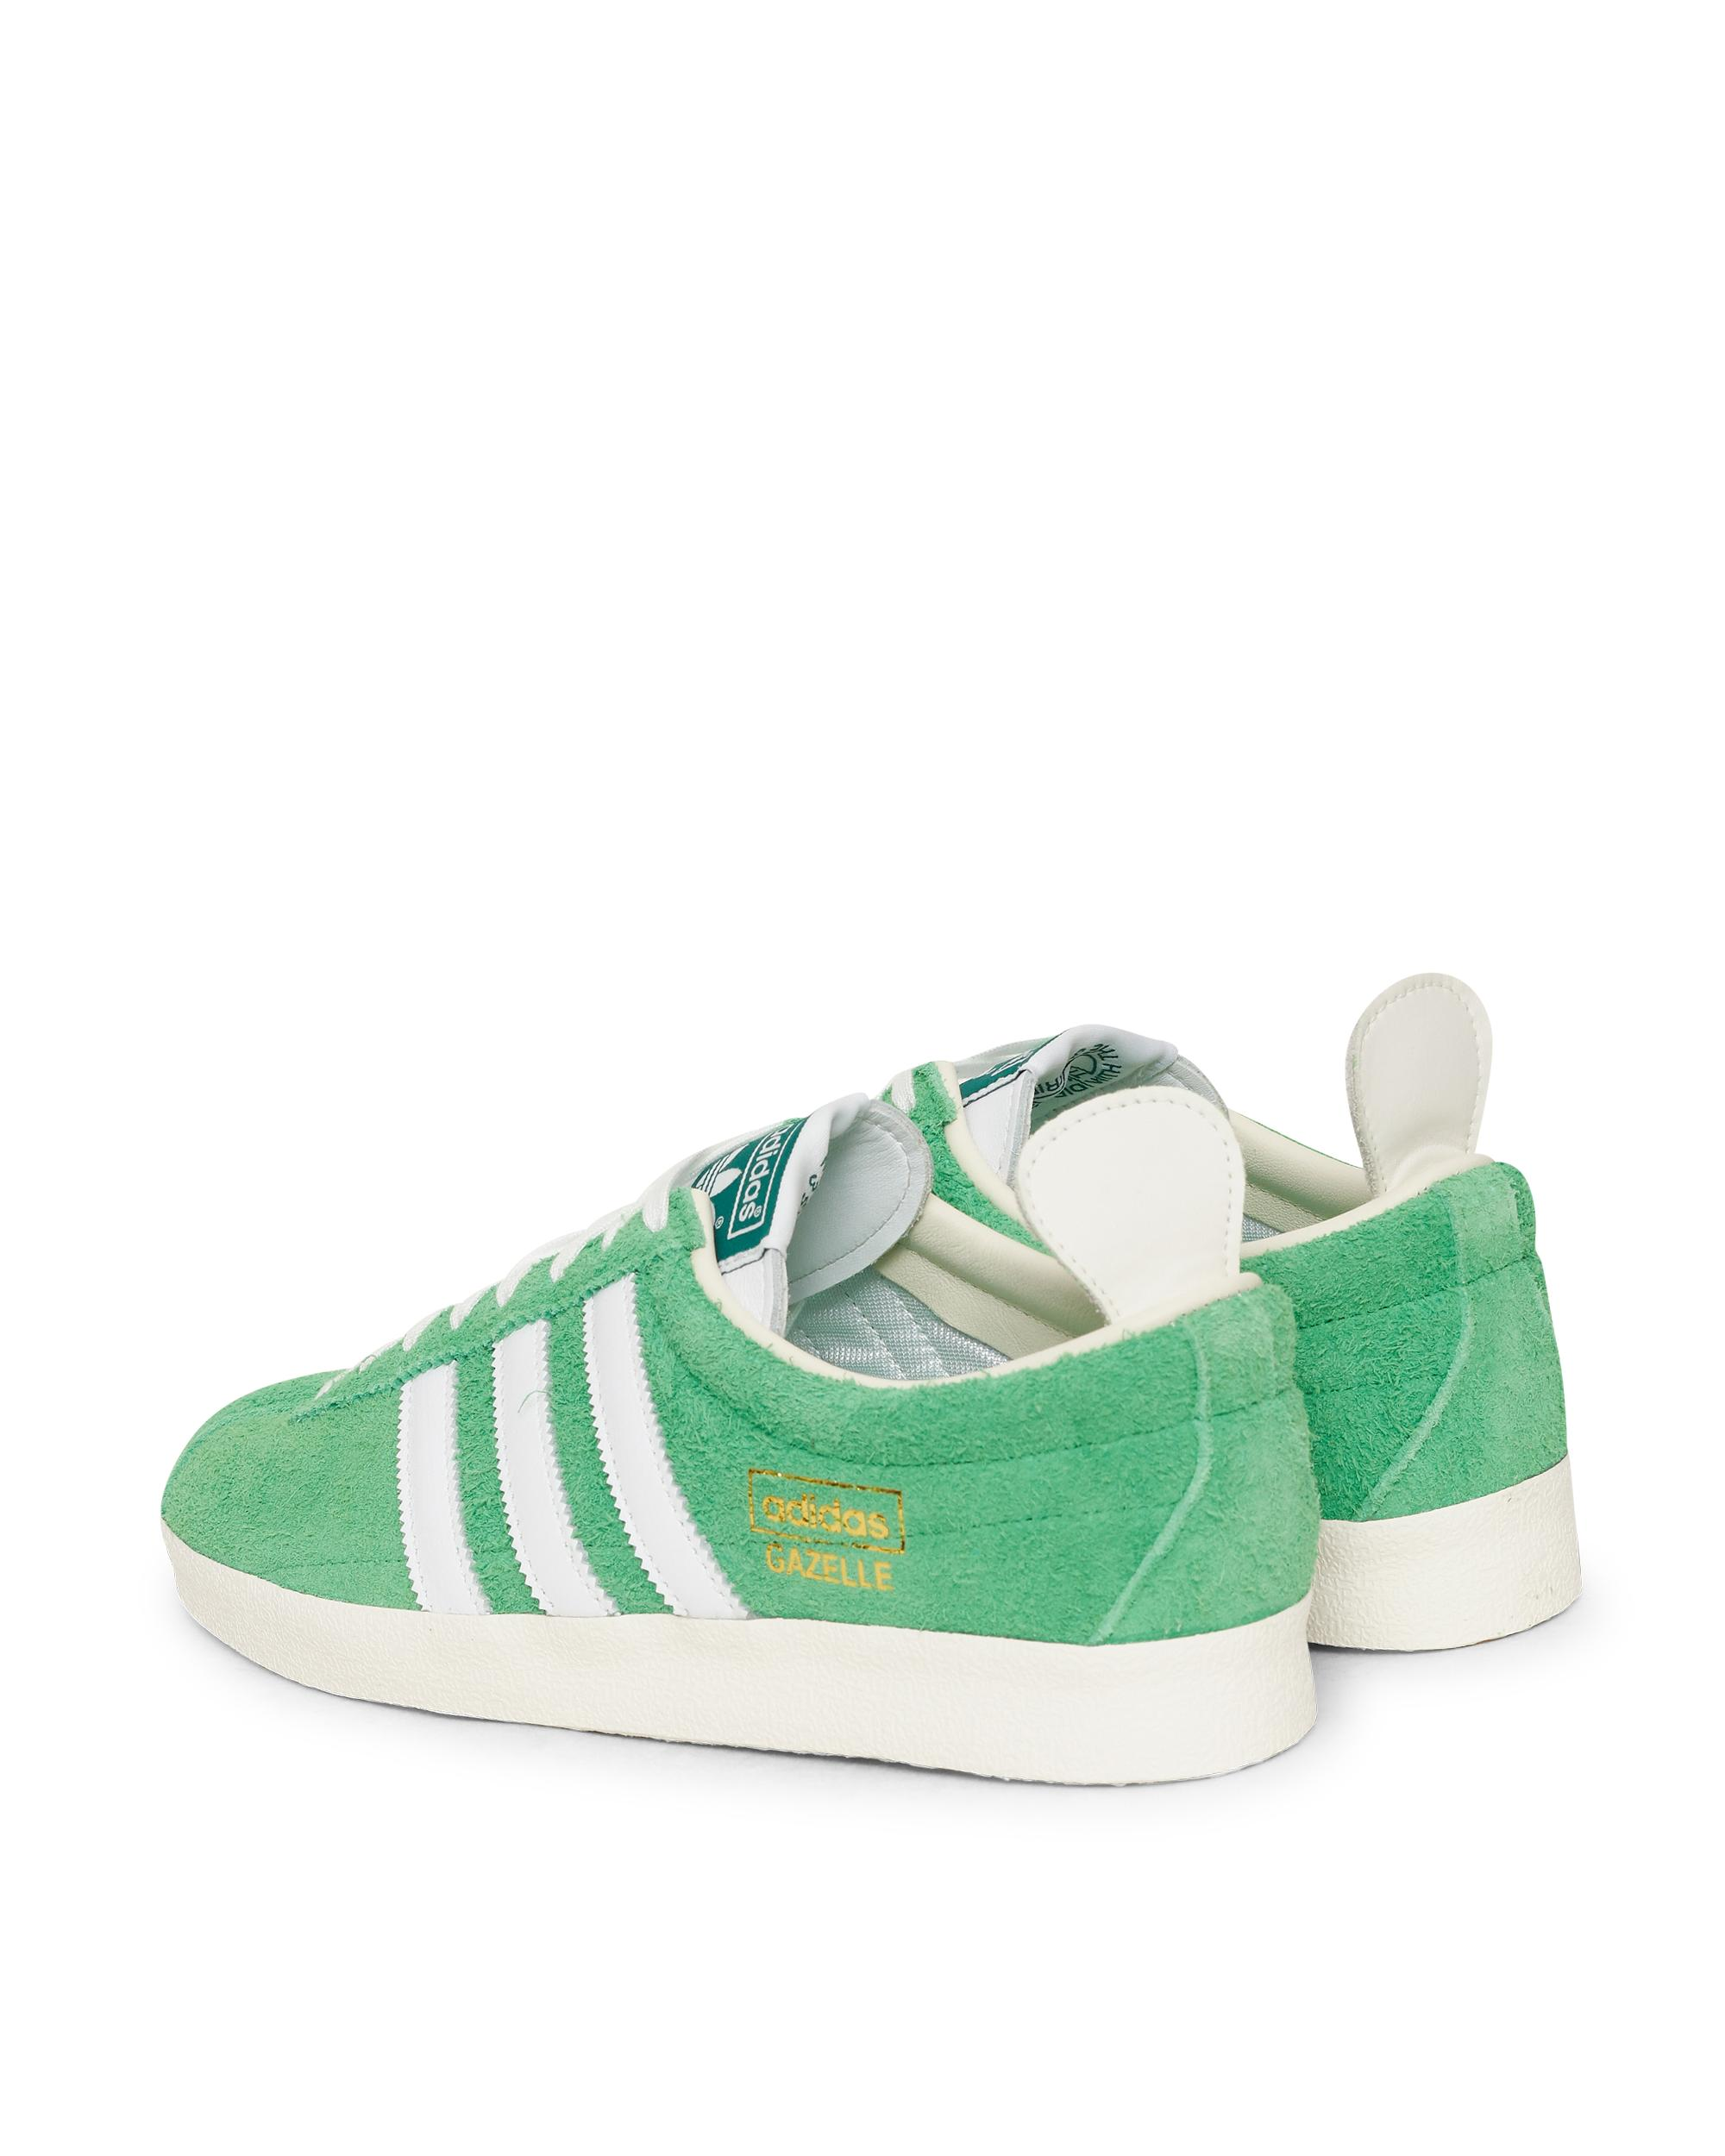 adidas Originals Lace Gazelle Vintage Trainers in Green for Men - Lyst